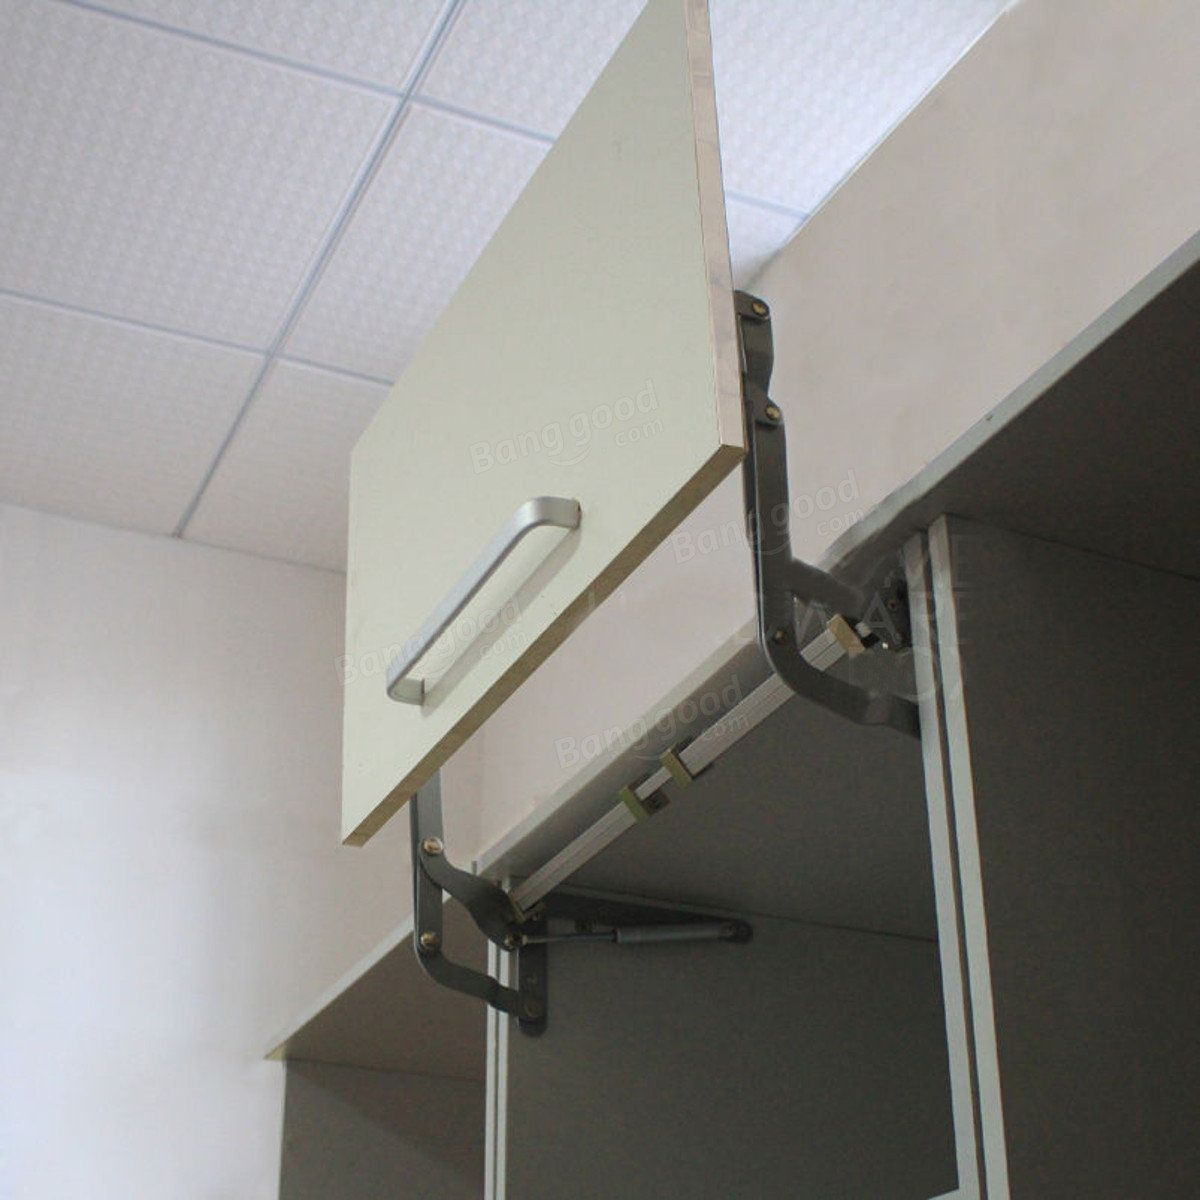 Arm Mechanism Hinges Vertical Swing Lift Up Stay Pneumatic For